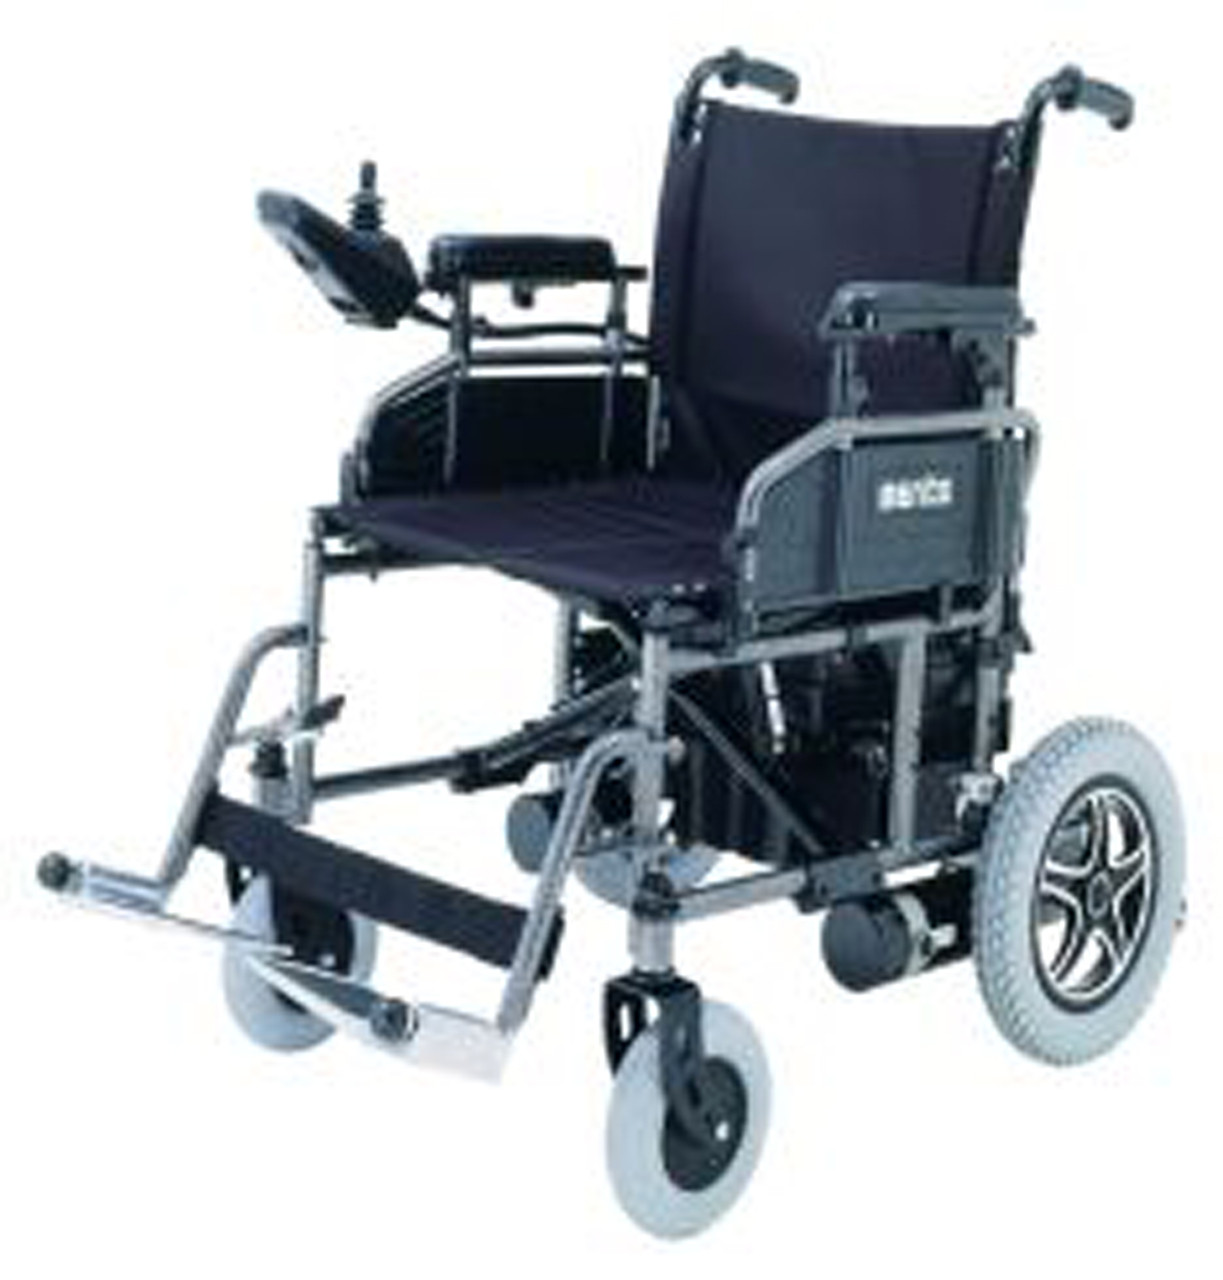 merits power chair rocking cheap folding p101 with 20 quot wide seat good